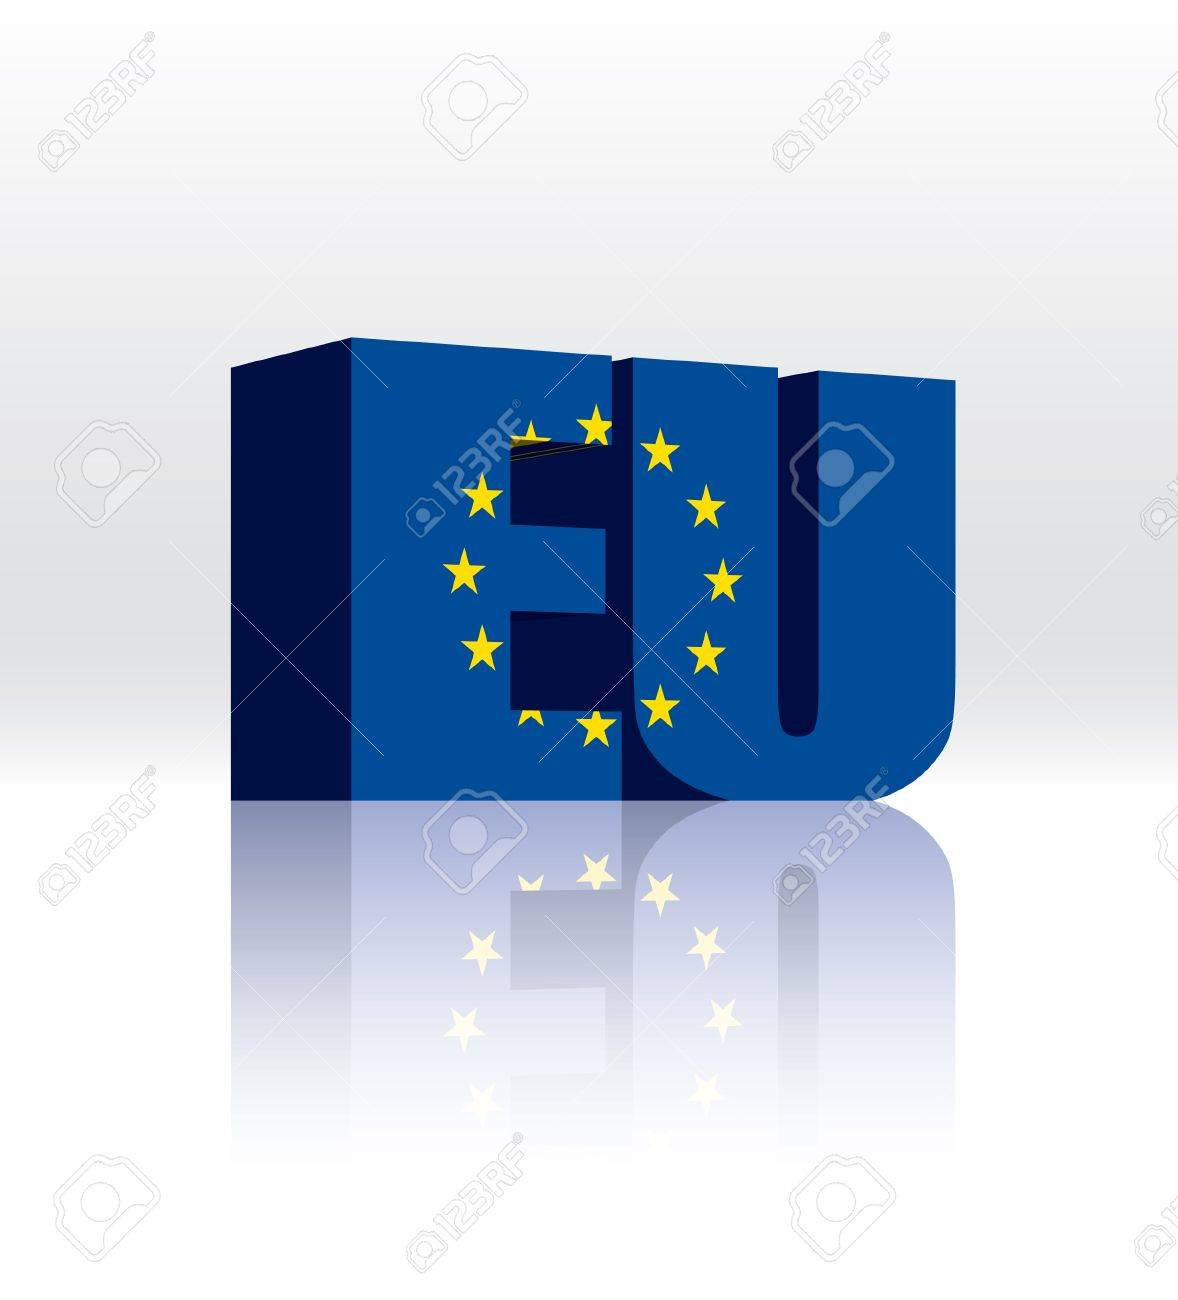 3D EU (European Union) Word Text Flag Stock Vector - 16173420